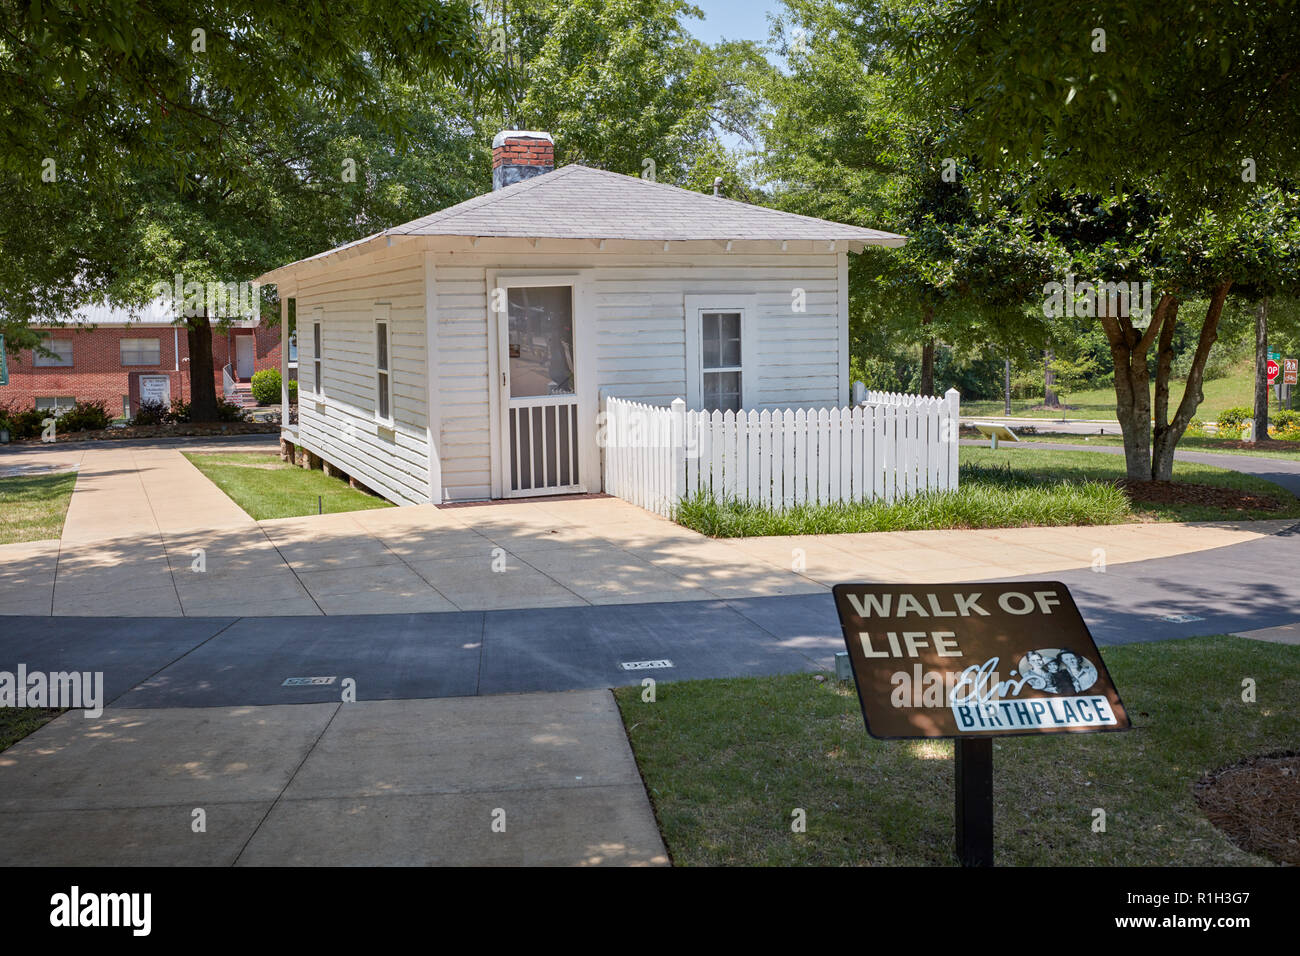 Birthplace of Elvis Presley, the King of Rock and Roll, in Tupelo, Mississippi - Stock Image